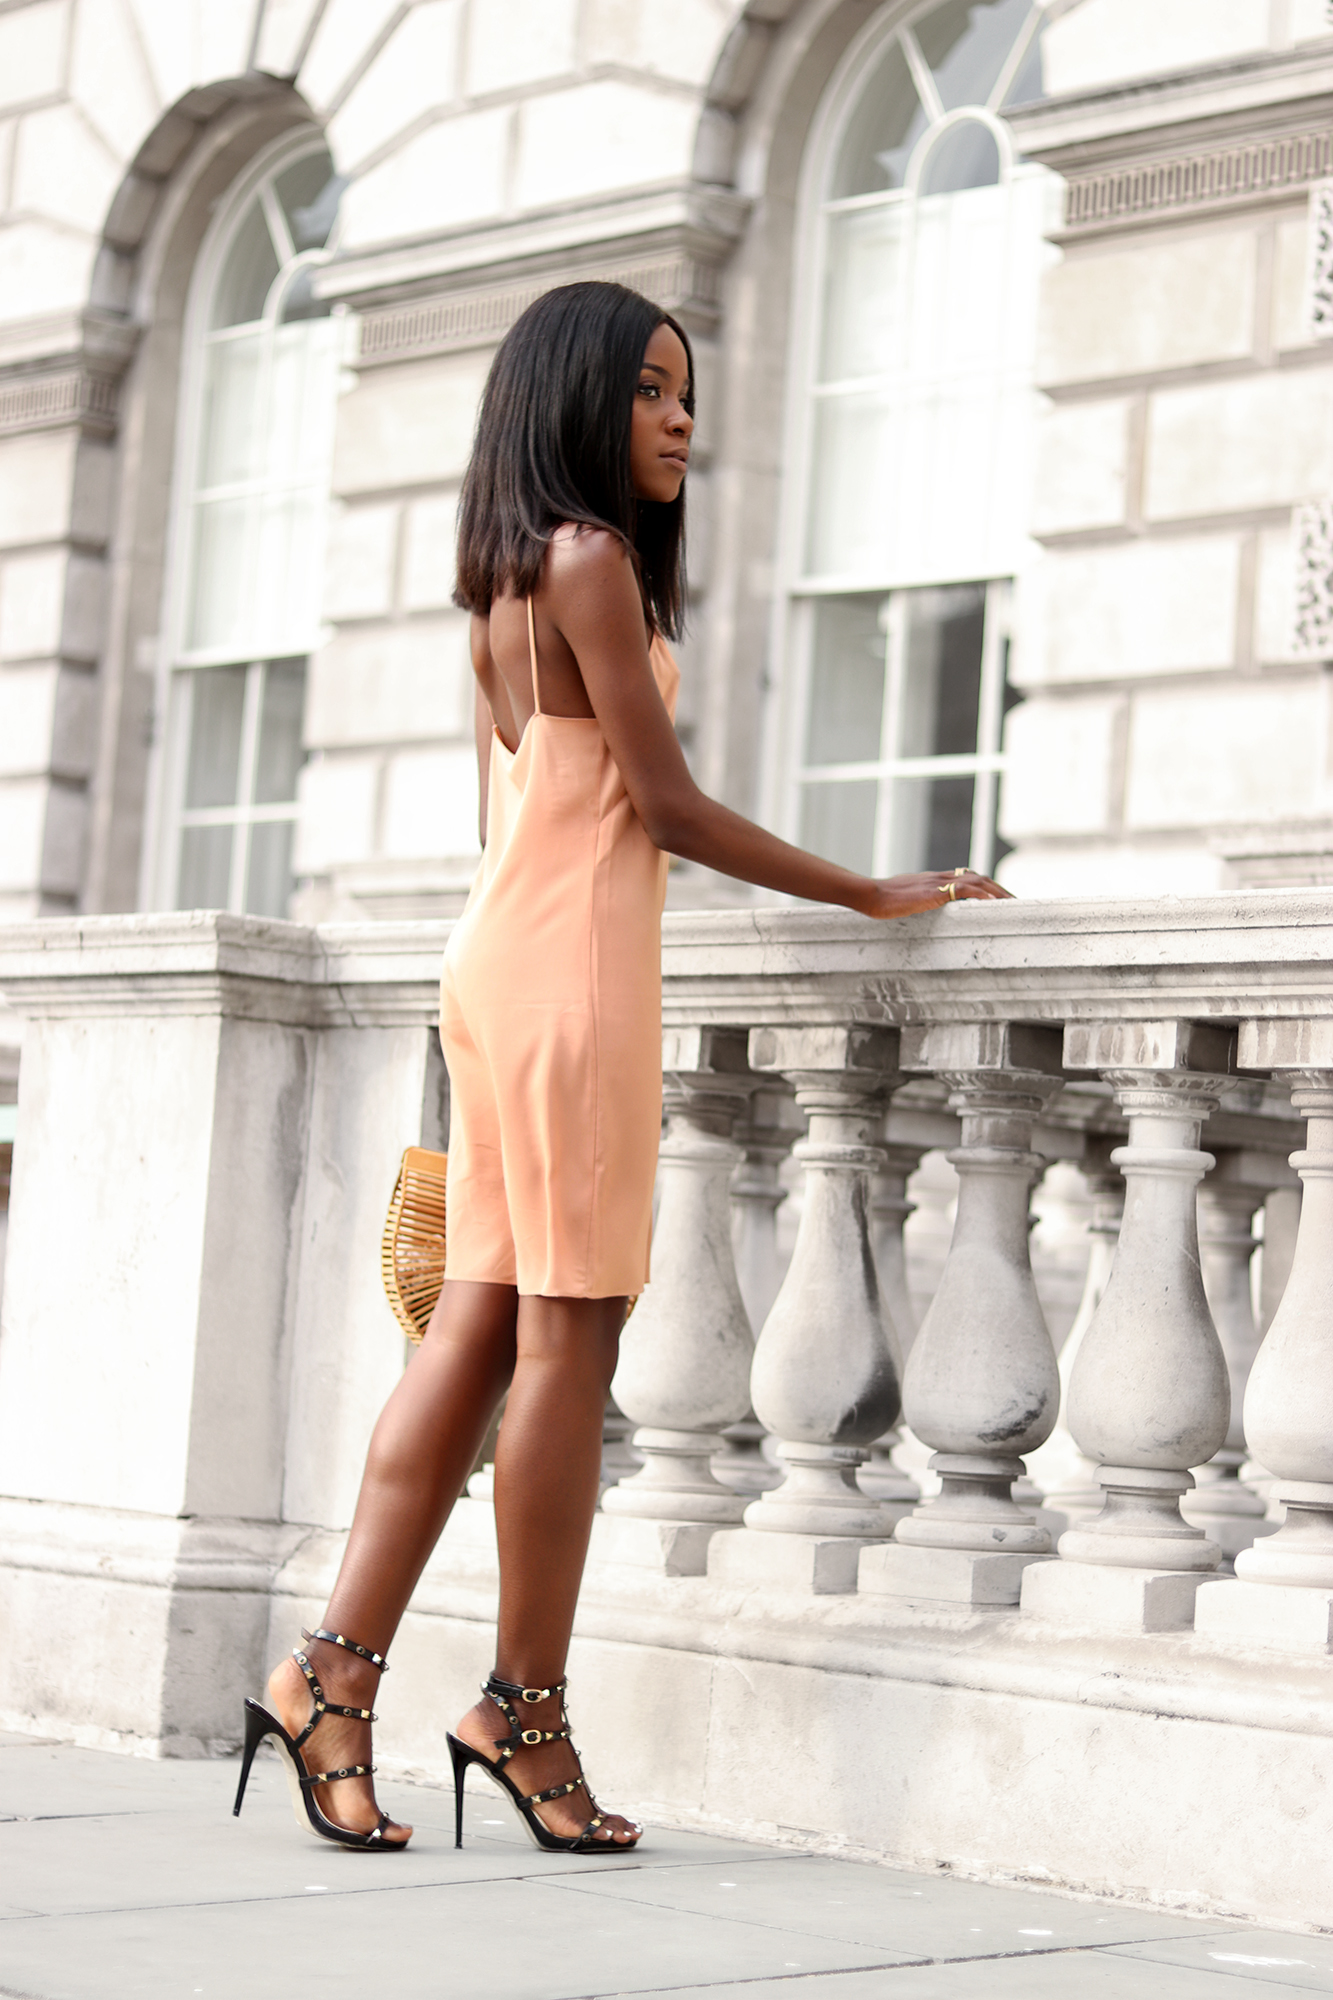 Wearing the slip dress the minima way with heels and few accessories.